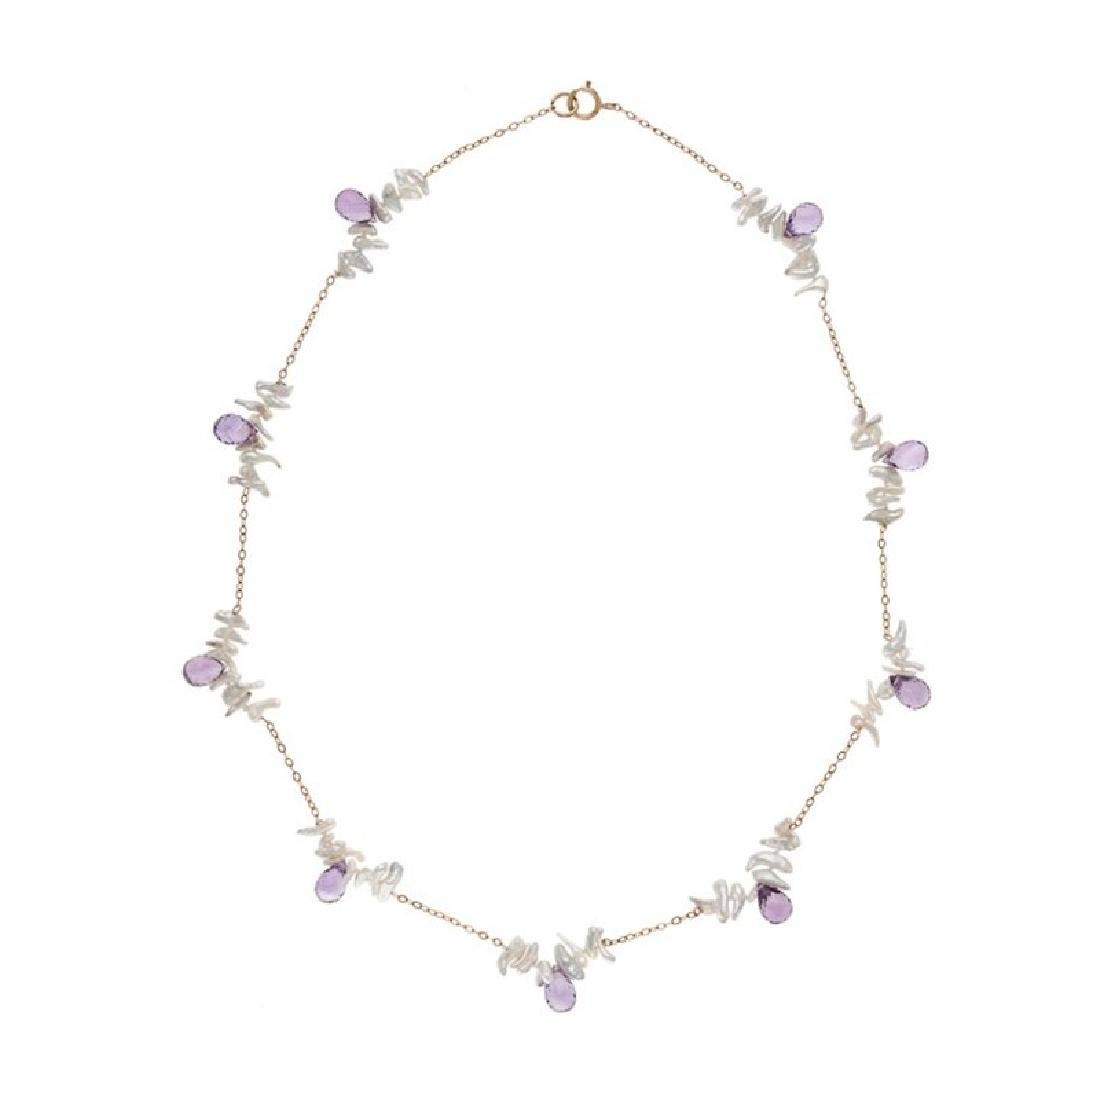 Japanese Keshi Tin Cup Necklace with Amethyst